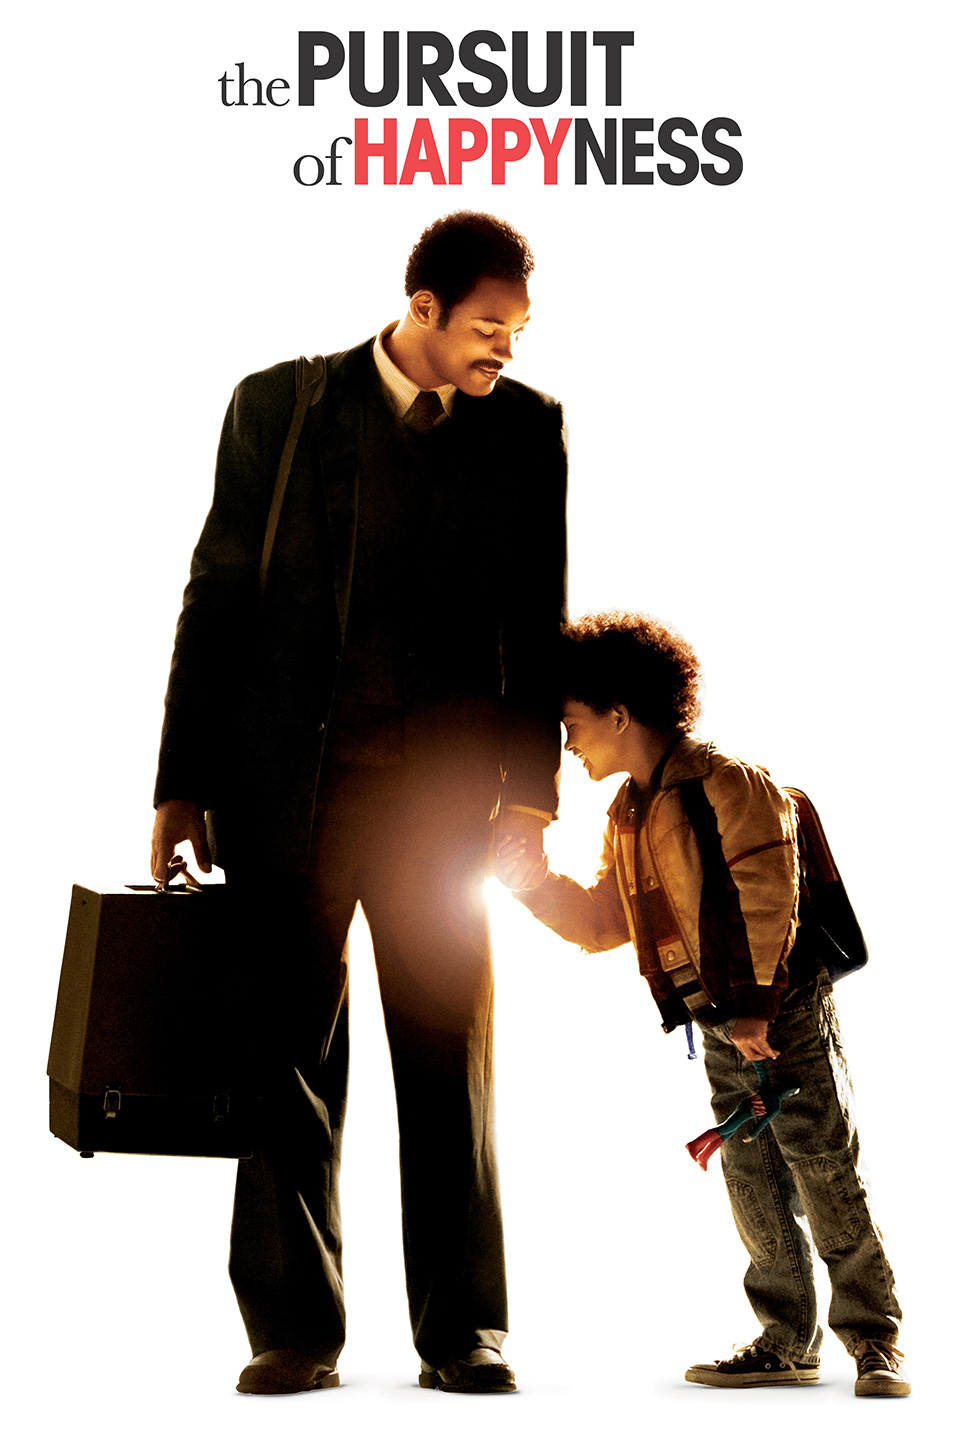 a pursuit of happiness a movie review essay Pursuit of happiness research papers look at a sample of an order placed on an assignment based on a movie.